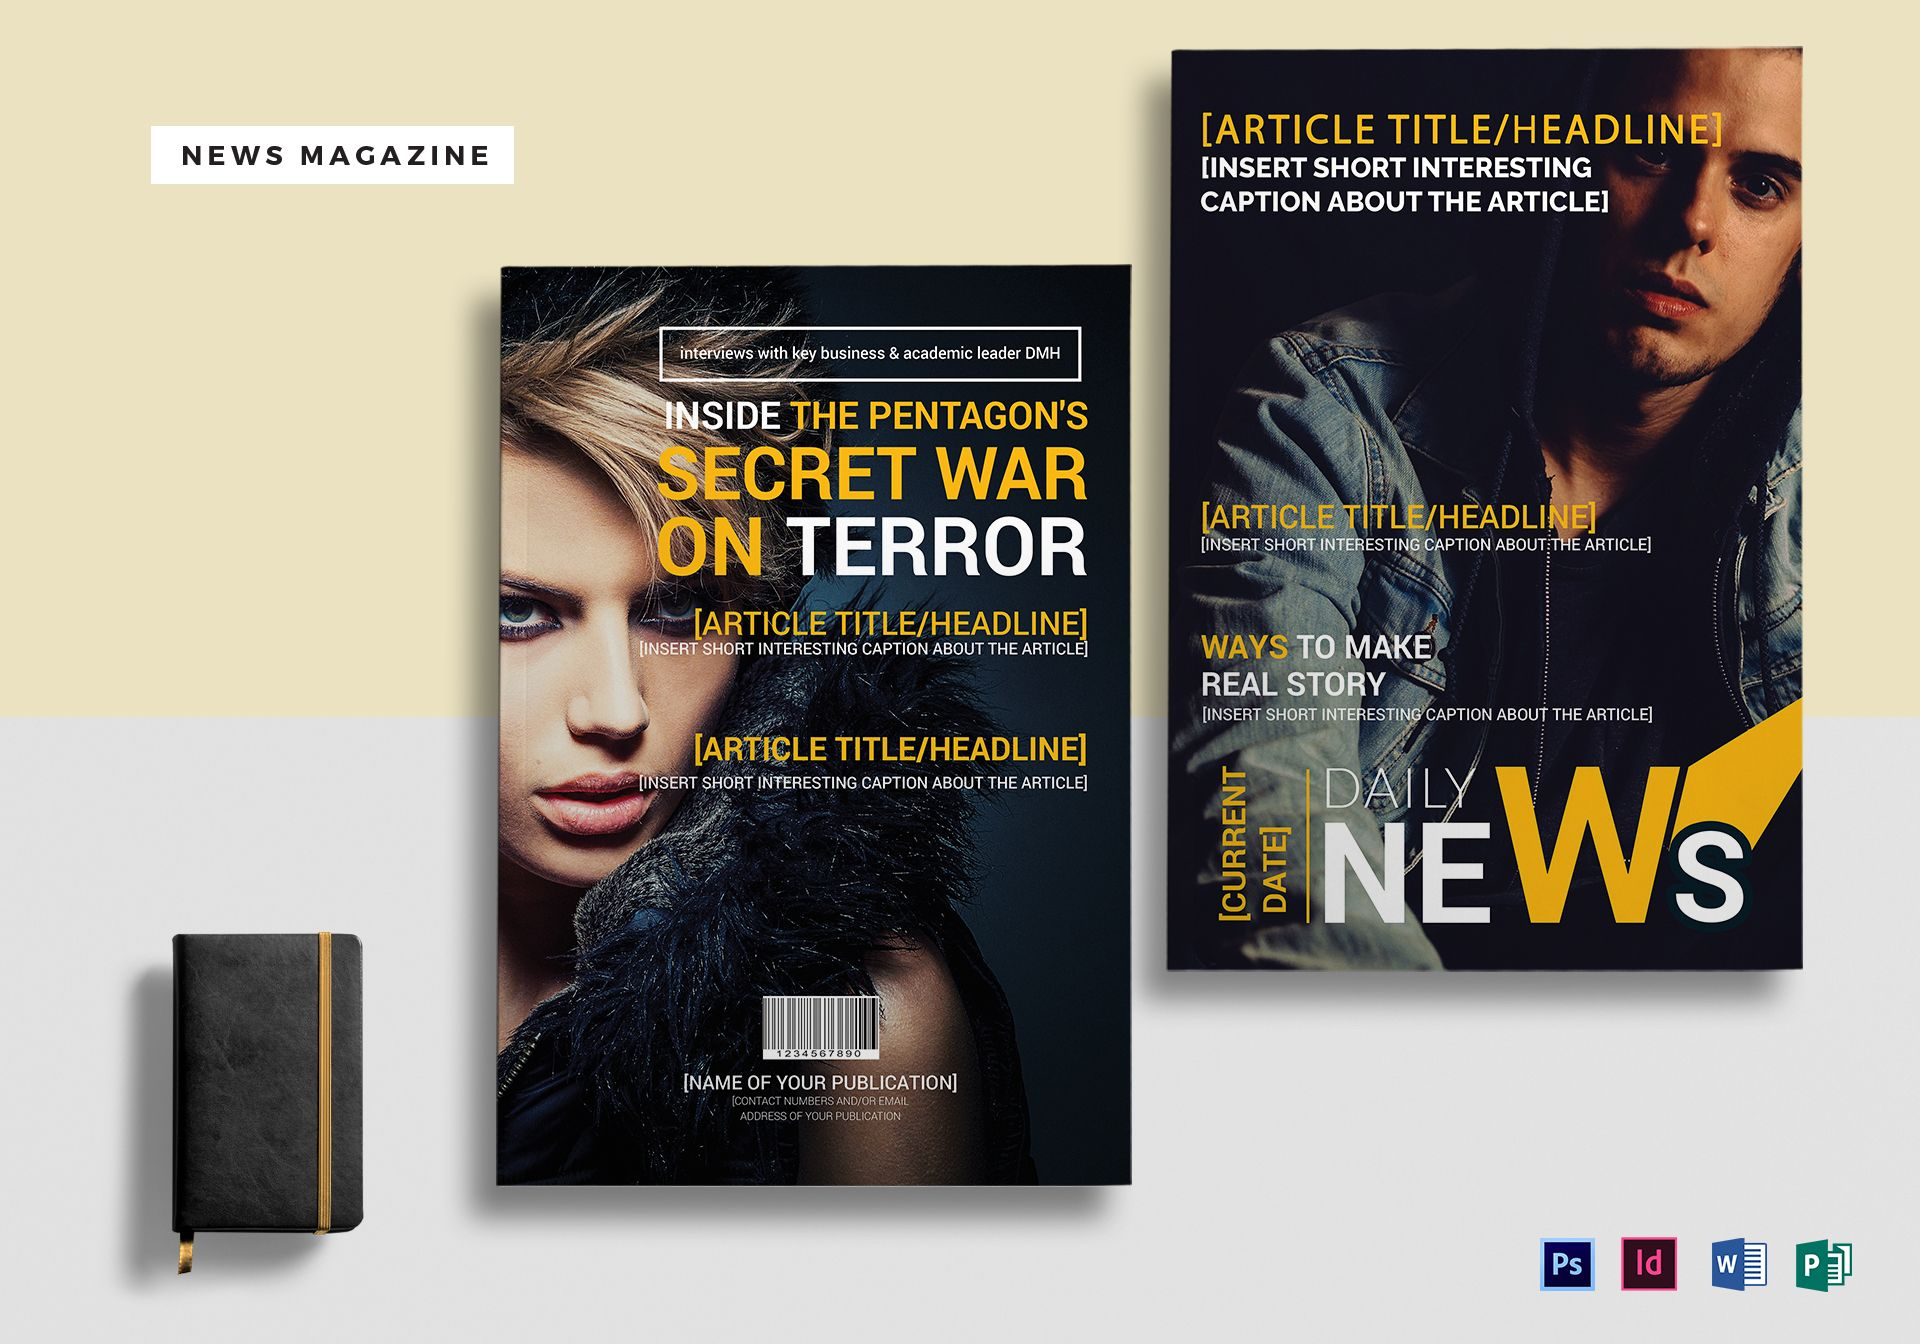 News Magazine Template in PSD, Word, Publisher, InDesign